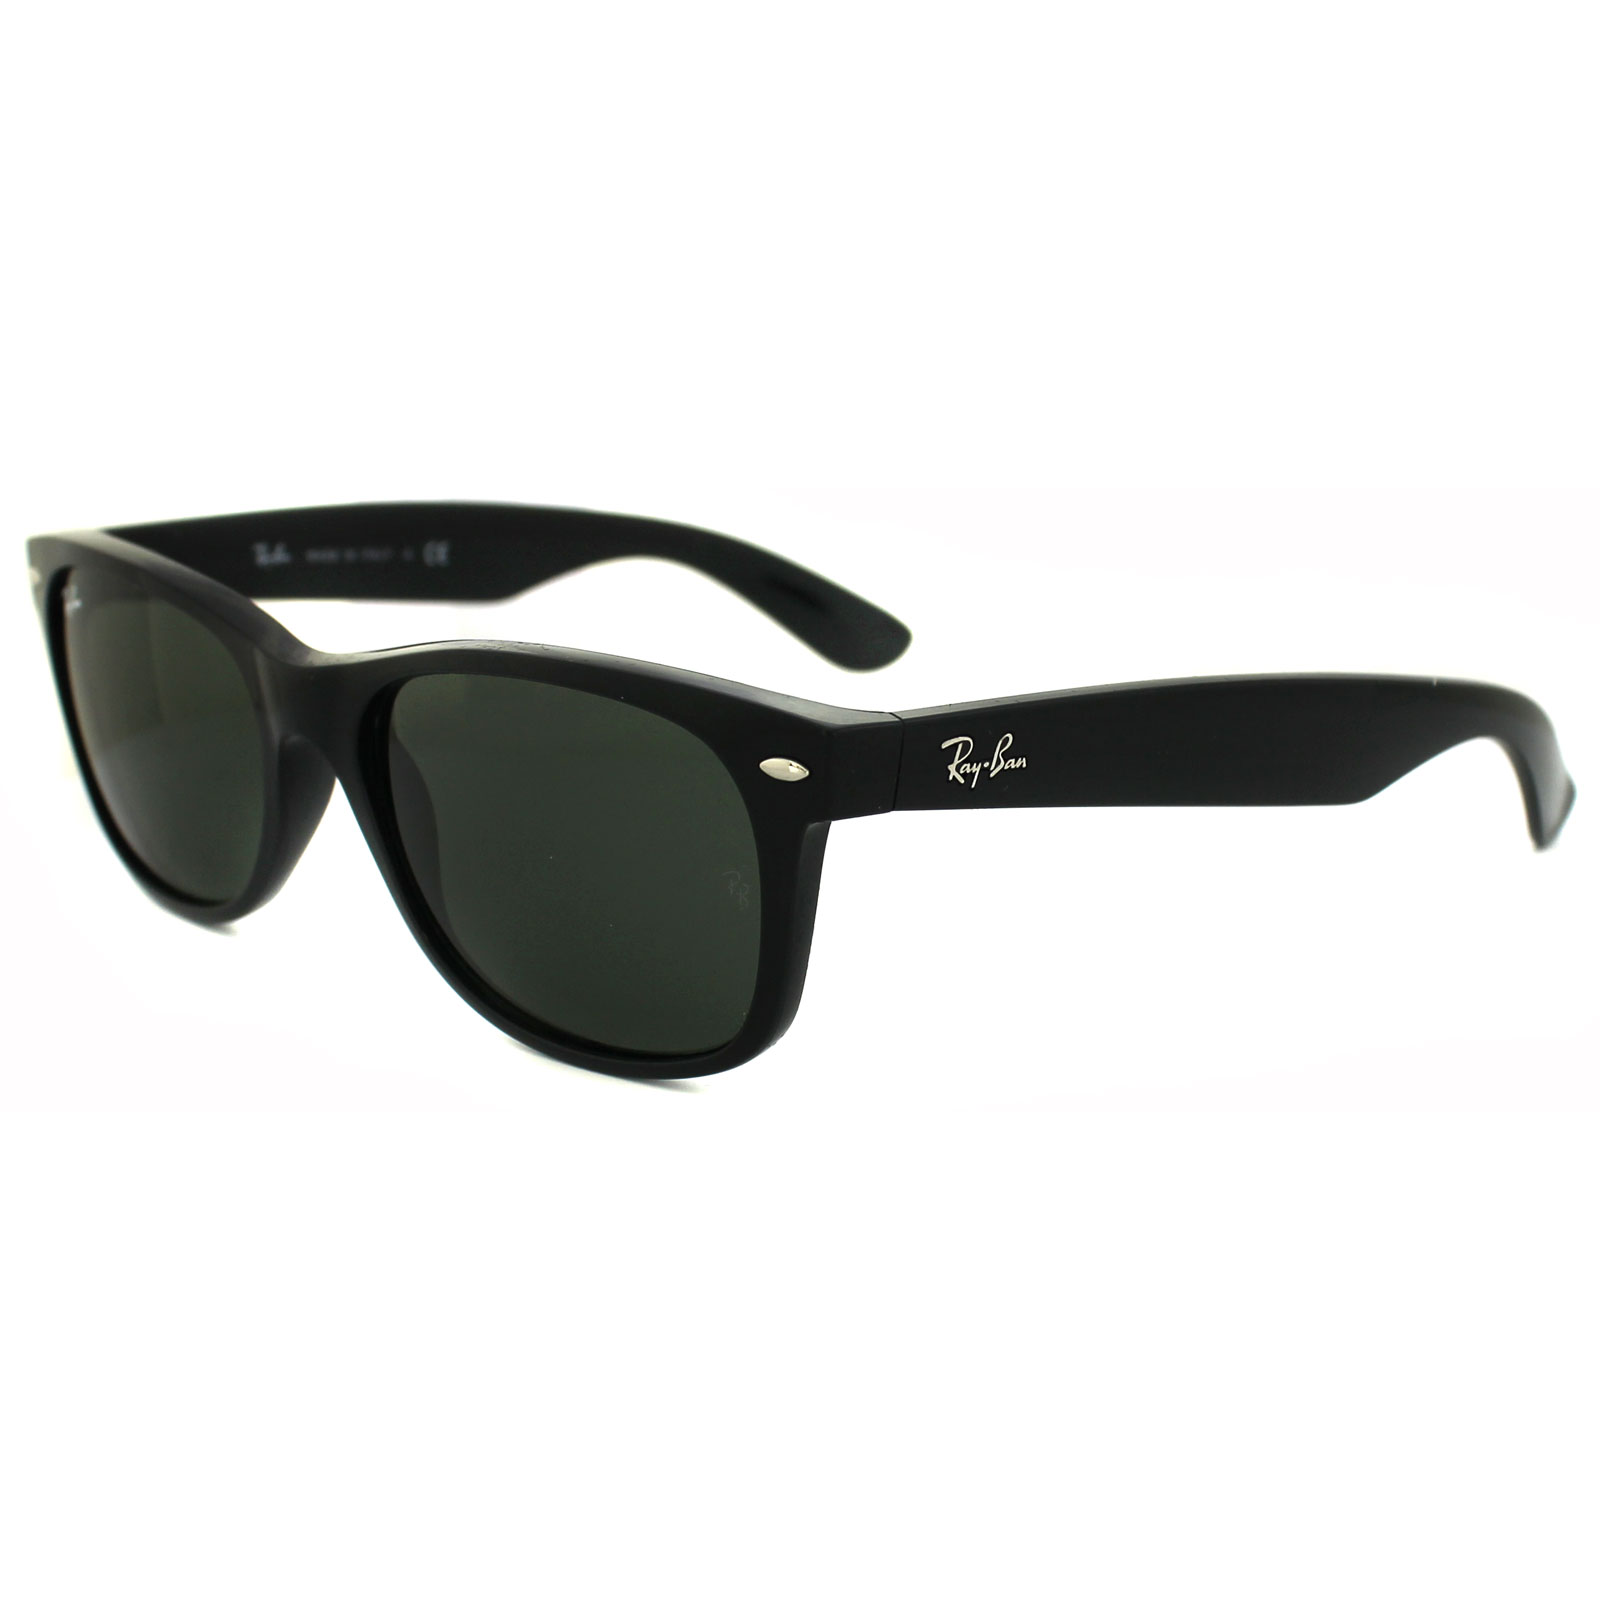 ba479d41c0c Cheap Ray-Ban New Wayfarer 2132 Sunglasses - Discounted Sunglasses